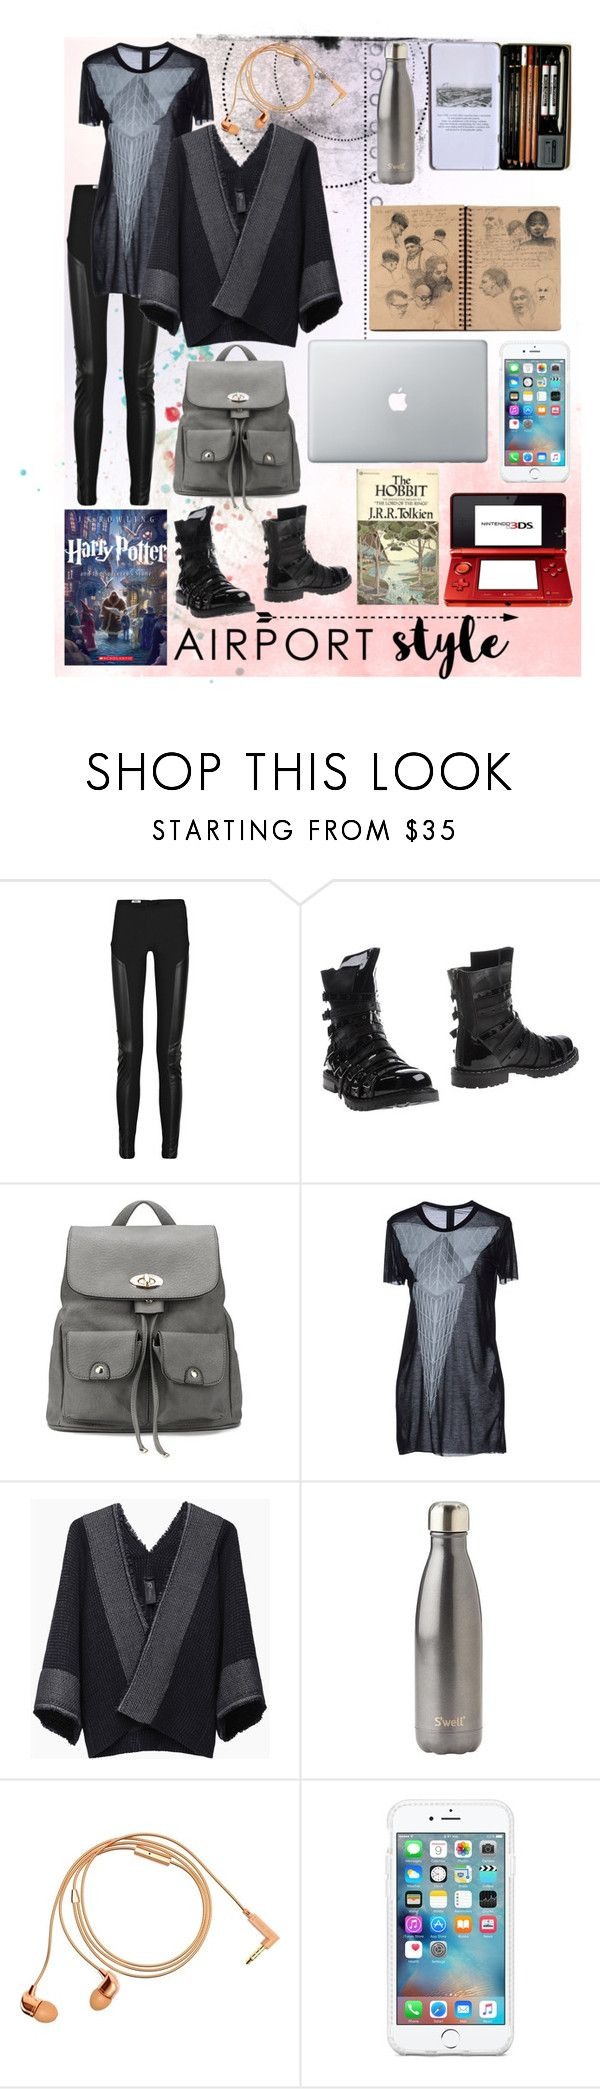 """""""Comfort is Key"""" by samanthabishop-i ❤ liked on Polyvore featuring Acne Studios, Gareth Pugh, Zero + Maria Cornejo, Nintendo, Vision, S'well, Happy Plugs and airportstyle"""